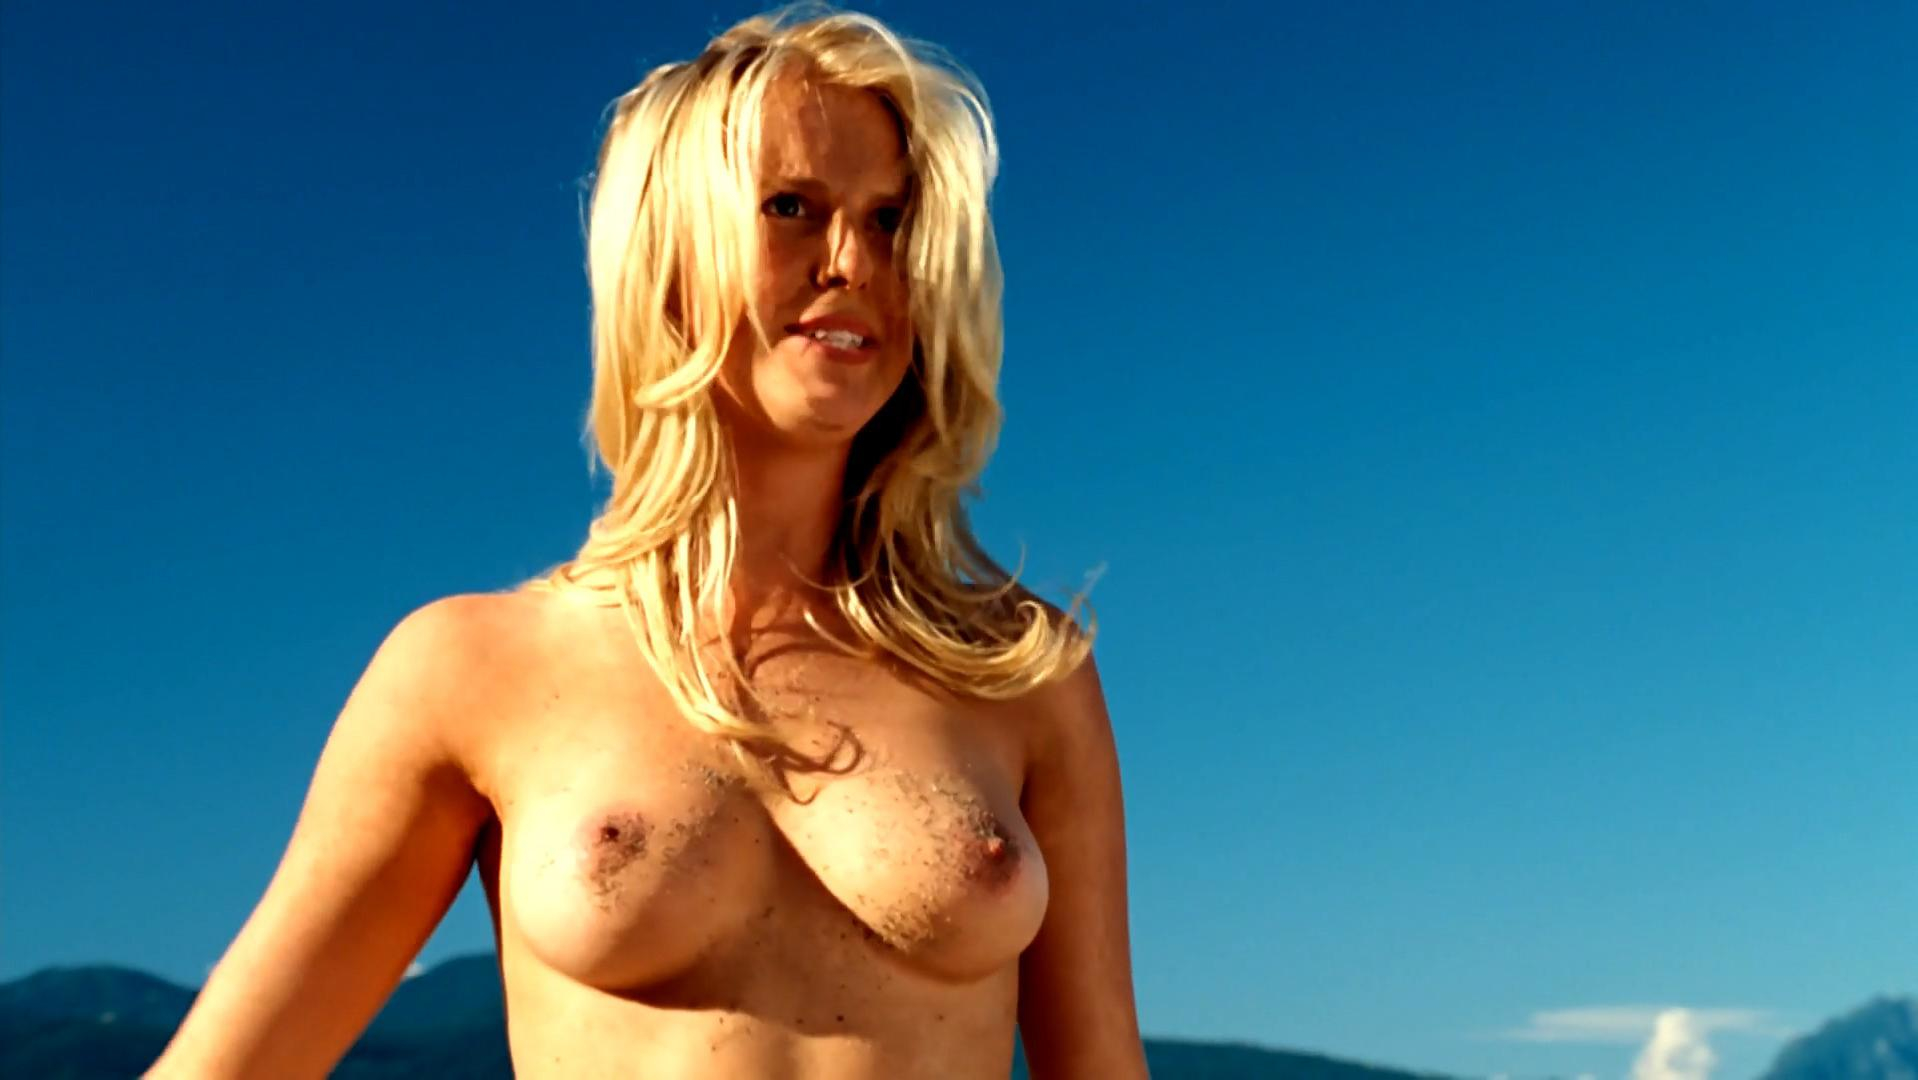 Chelan Simmons nude - Good Luck Chuck (2007)